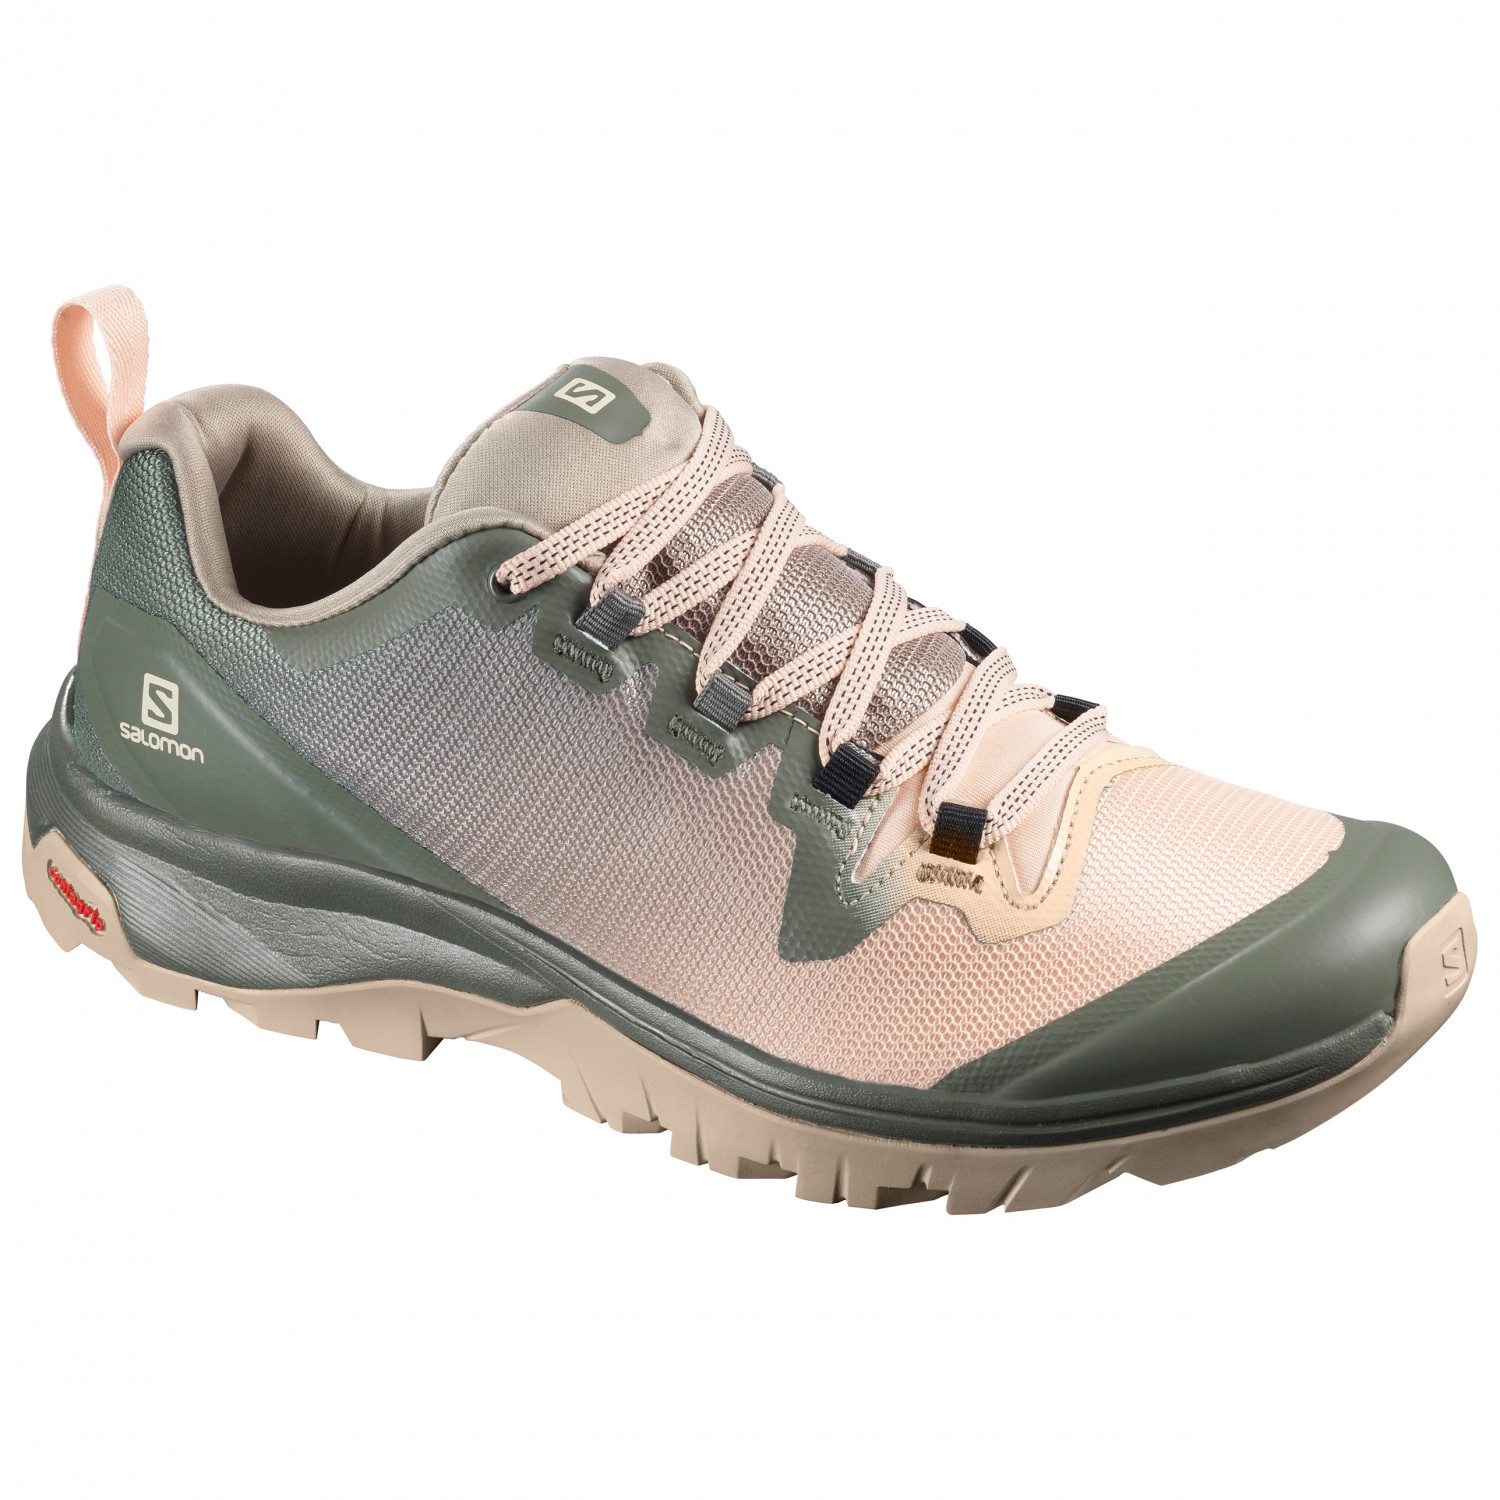 Salomon Vaya - Multisport shoes Women's | Free EU Delivery ...